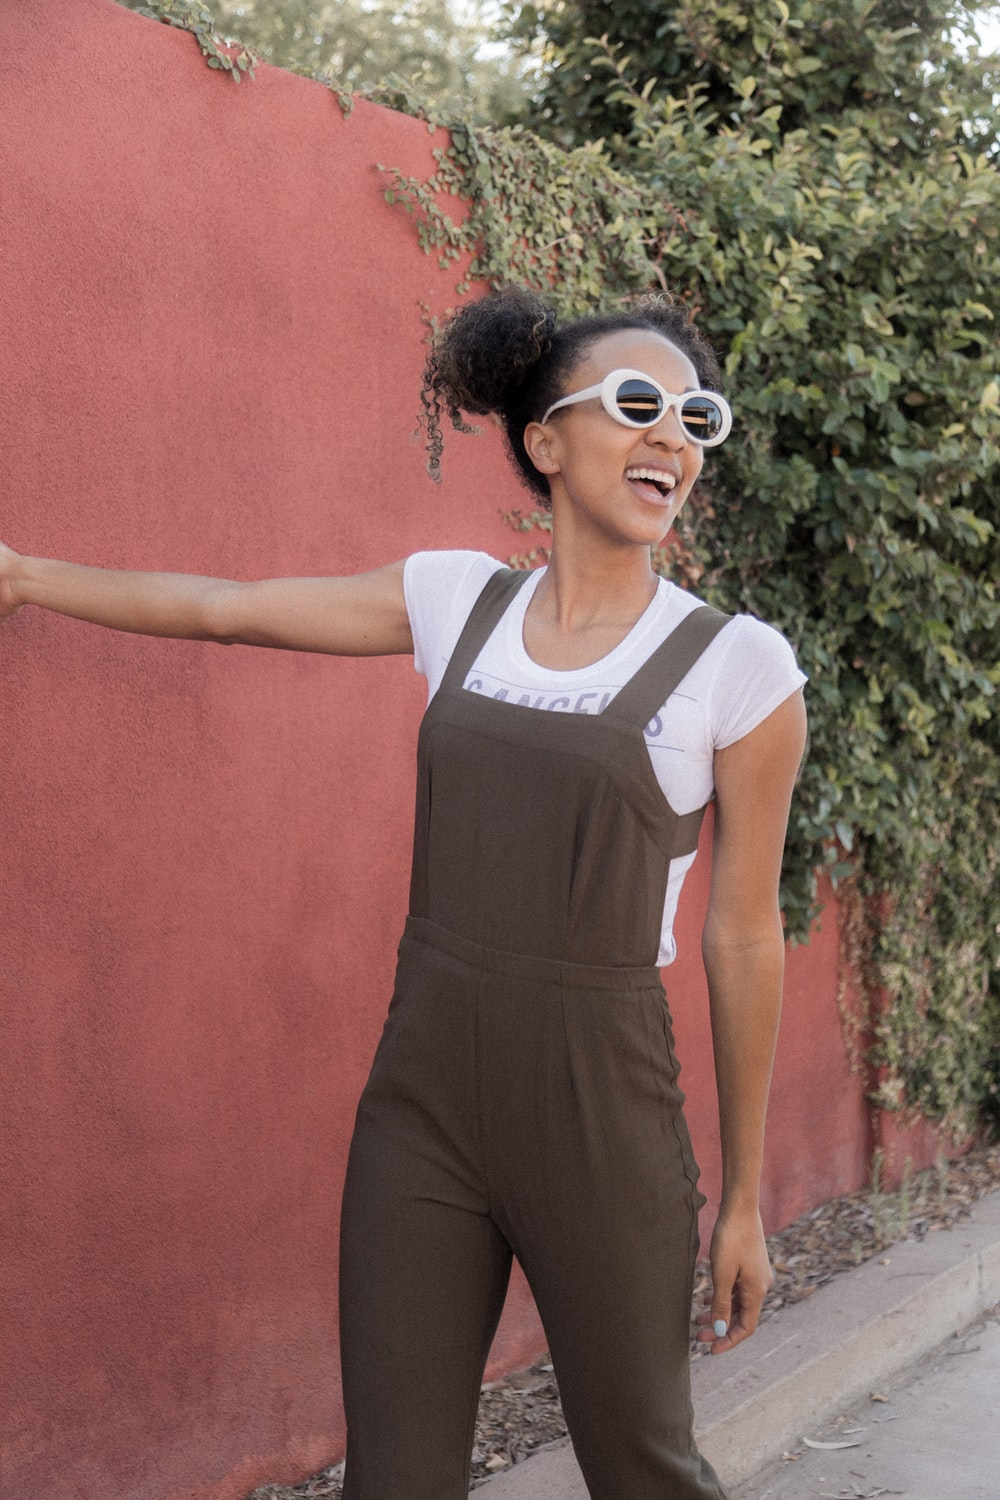 woman wearing white framed sunglasses walking near brown wall at daytime